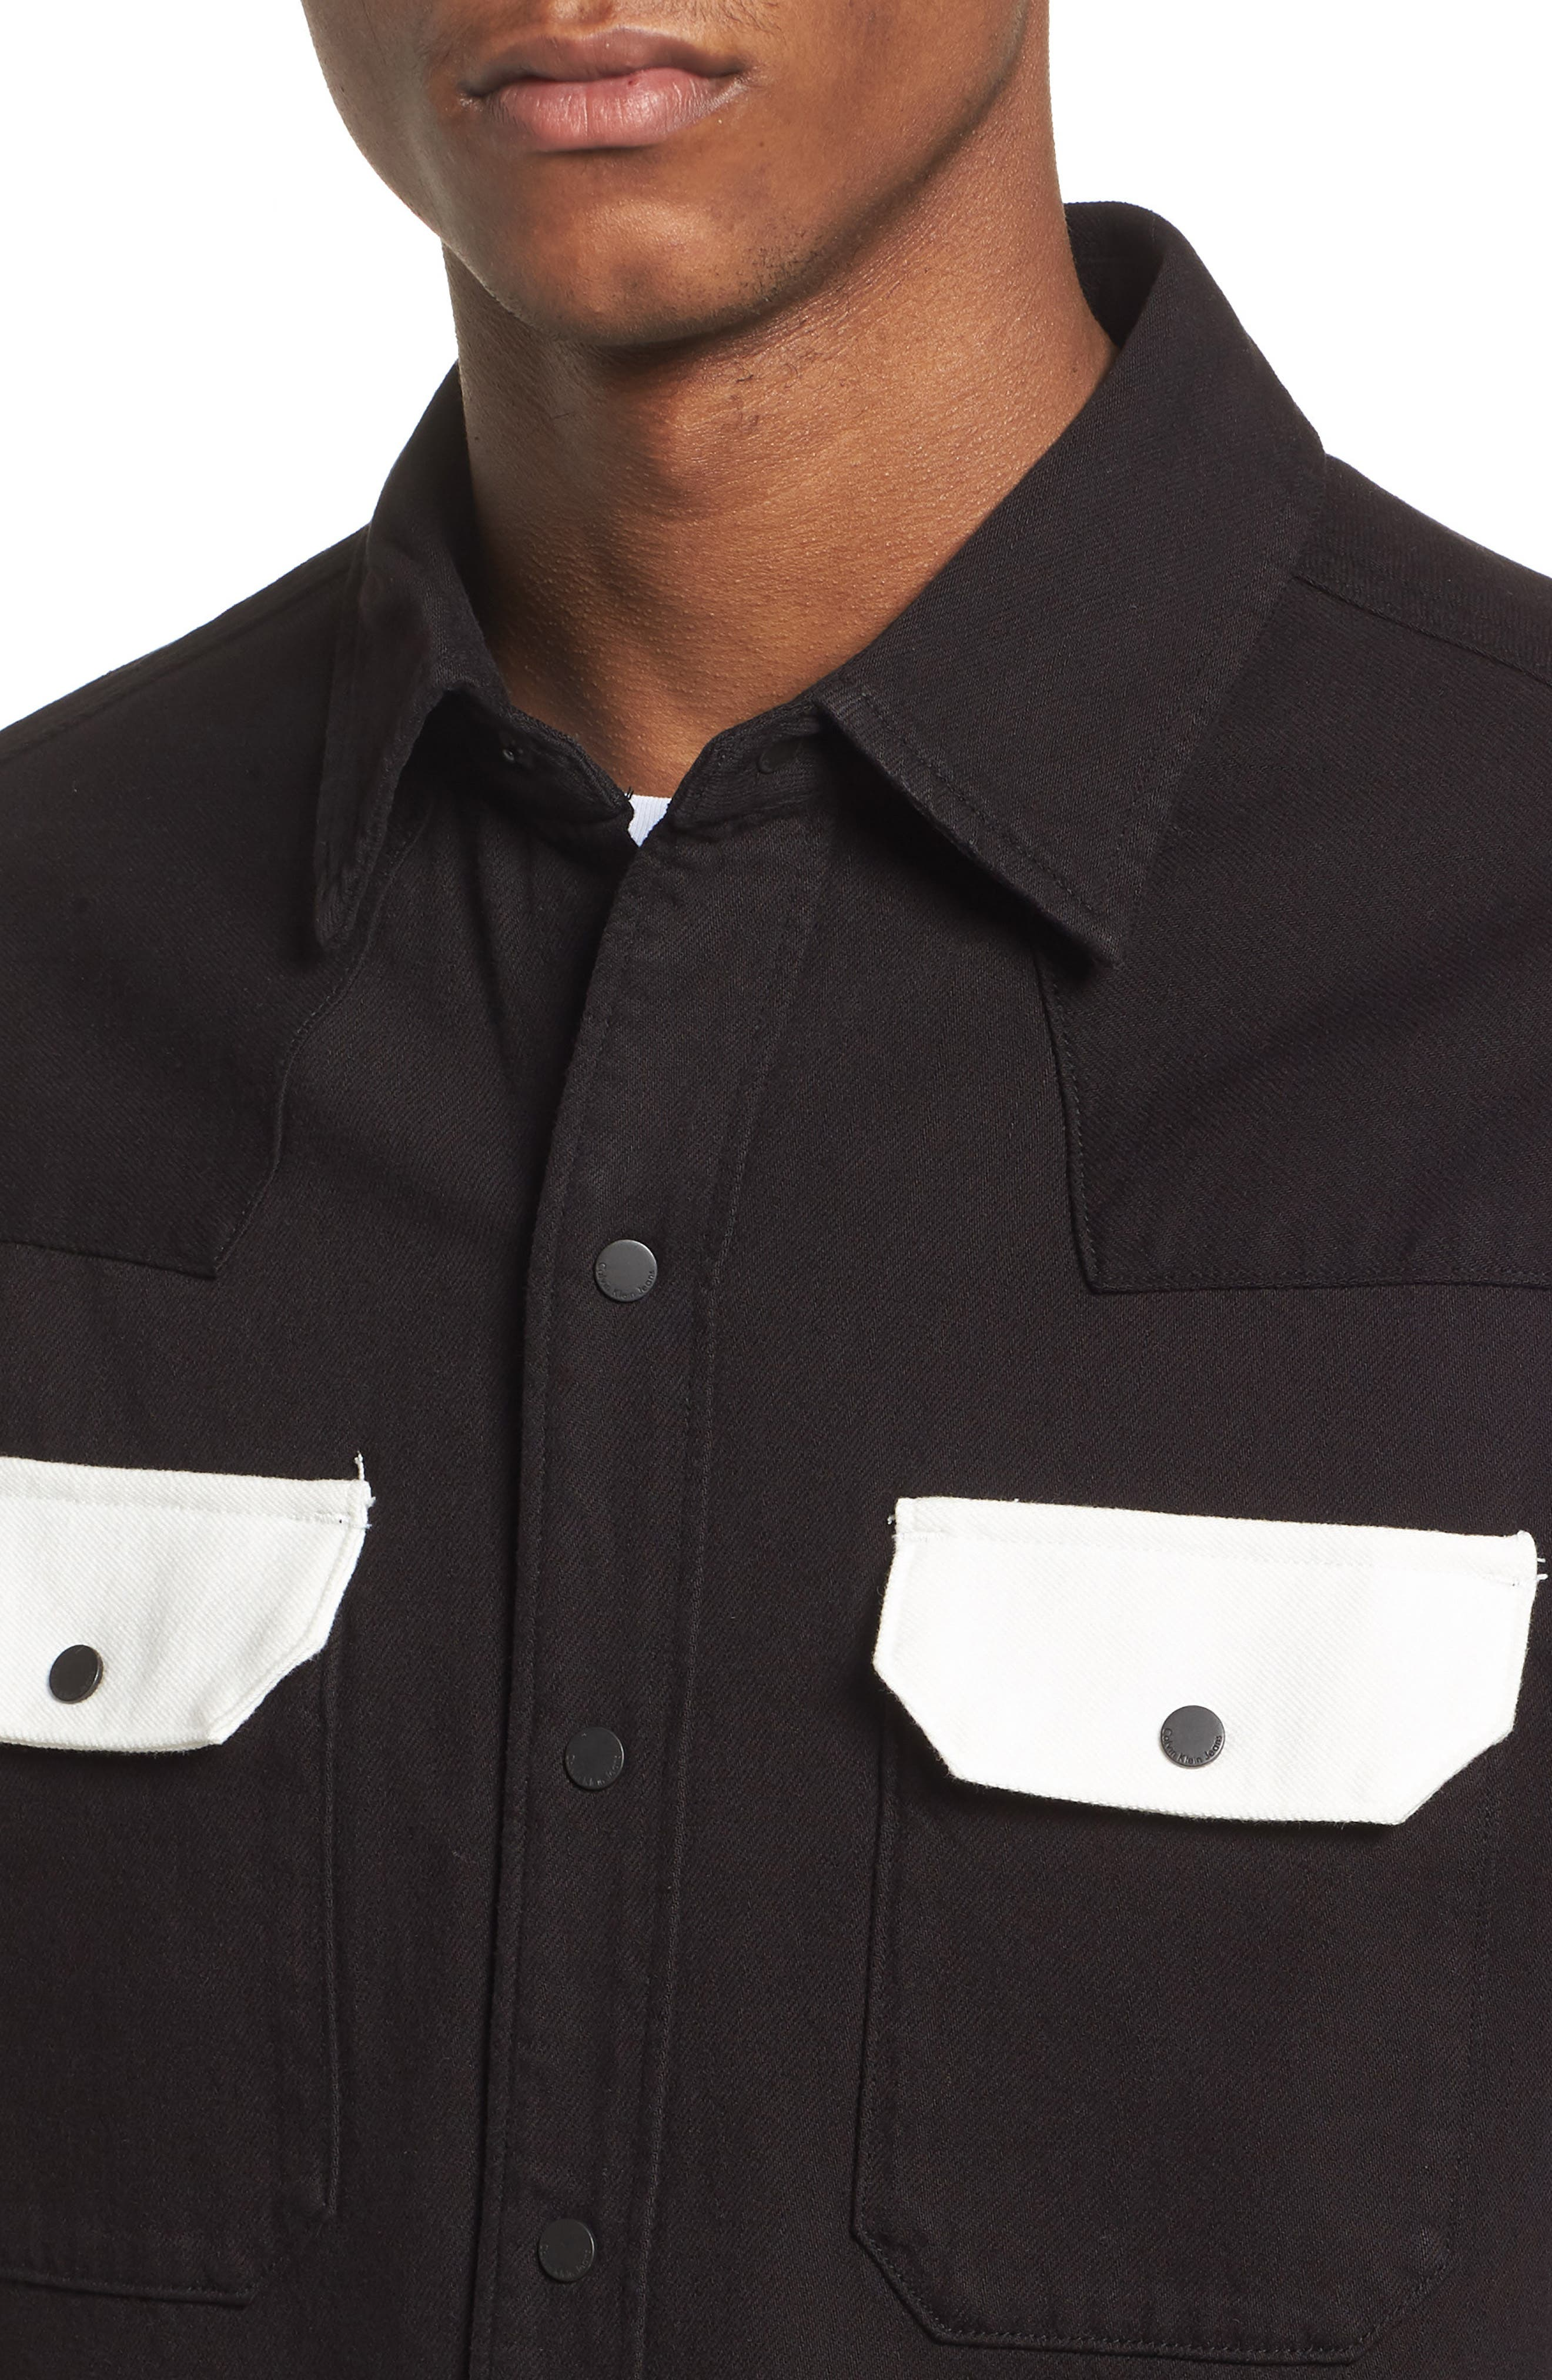 Archive Western Blocked Shirt,                             Alternate thumbnail 4, color,